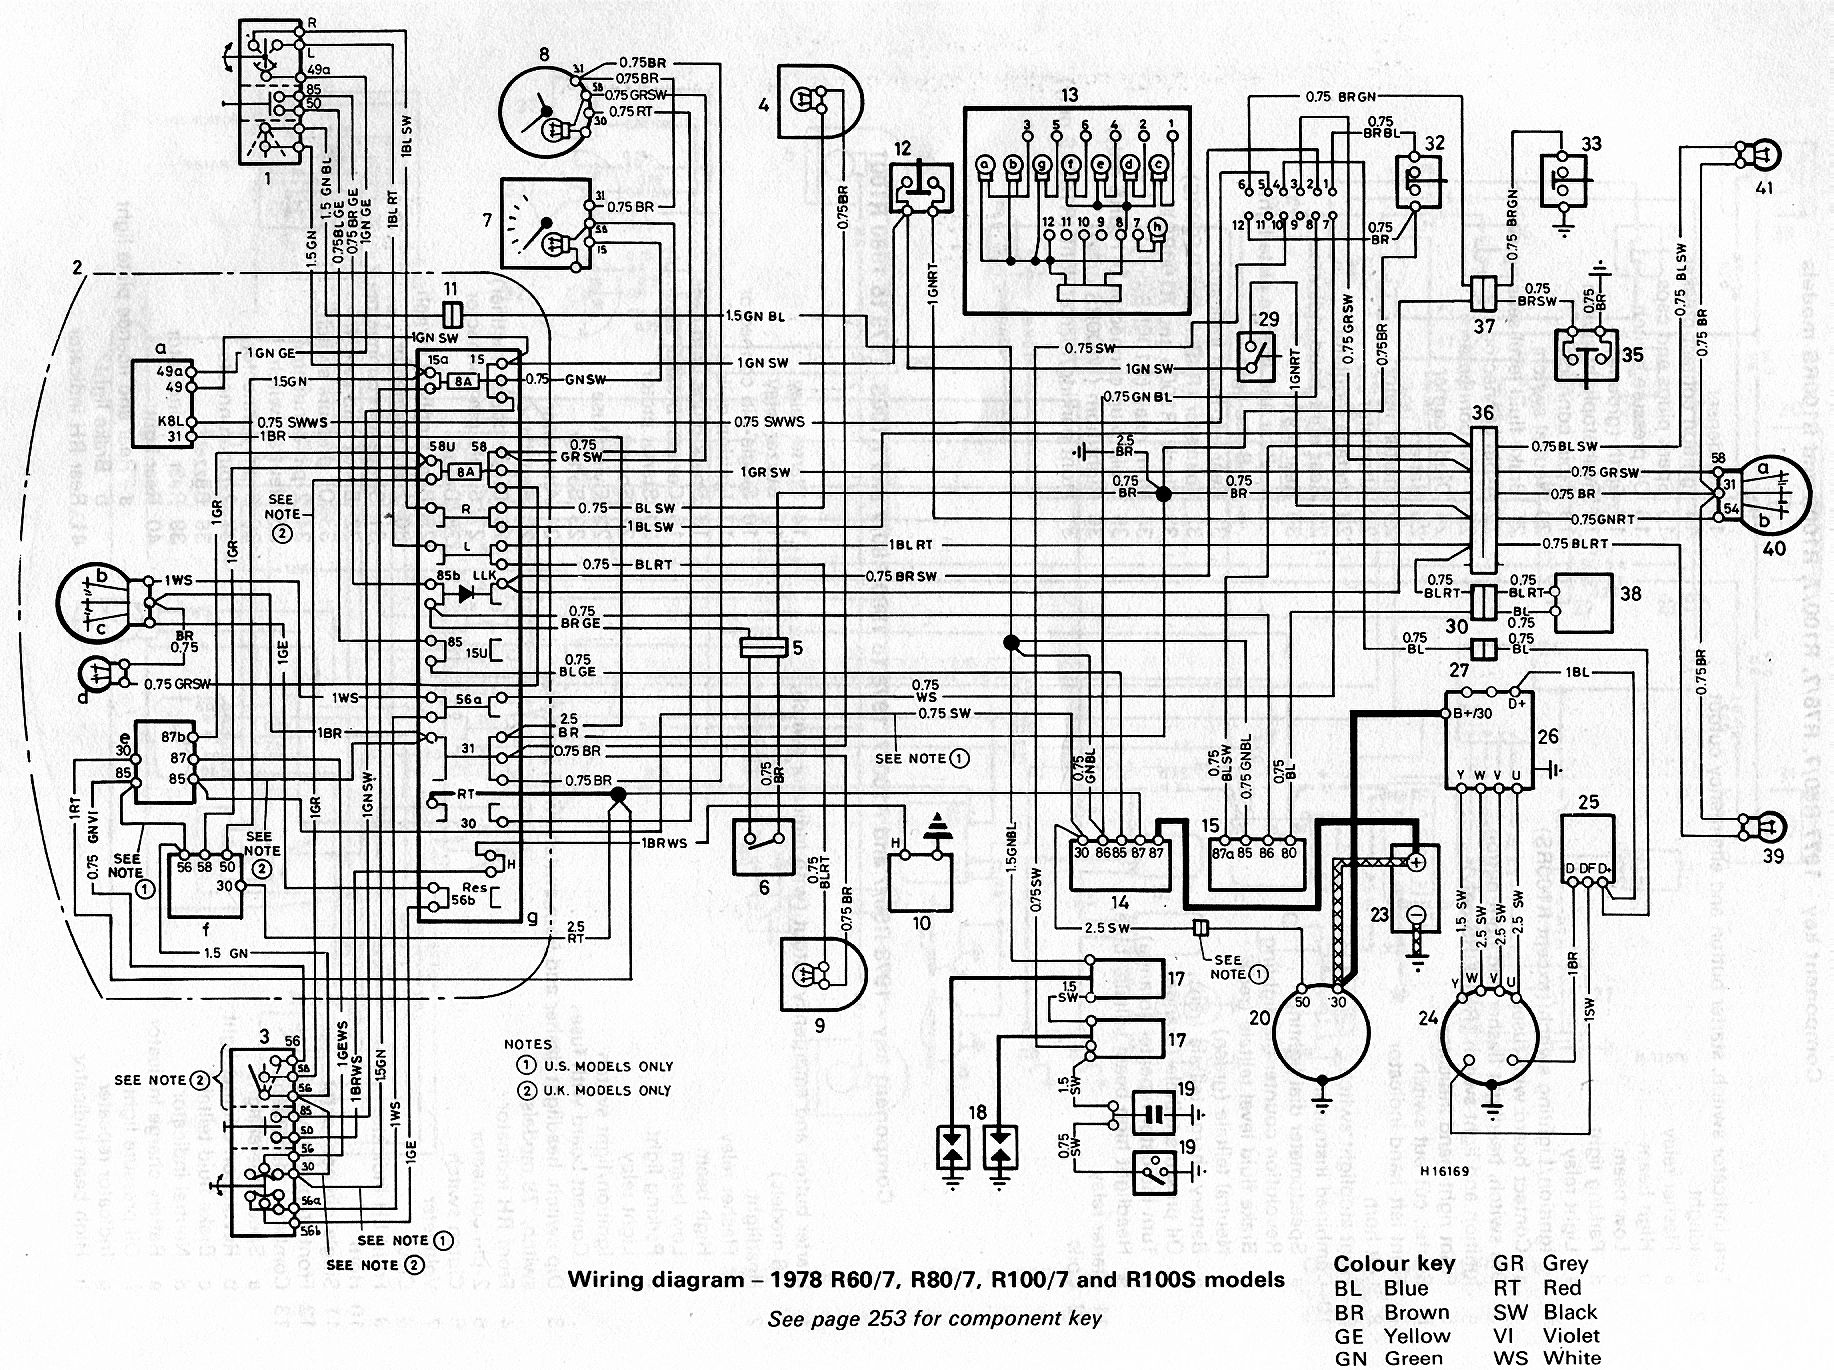 Bmw R75 5 Wiring Diagram : 24 Wiring Diagram Images